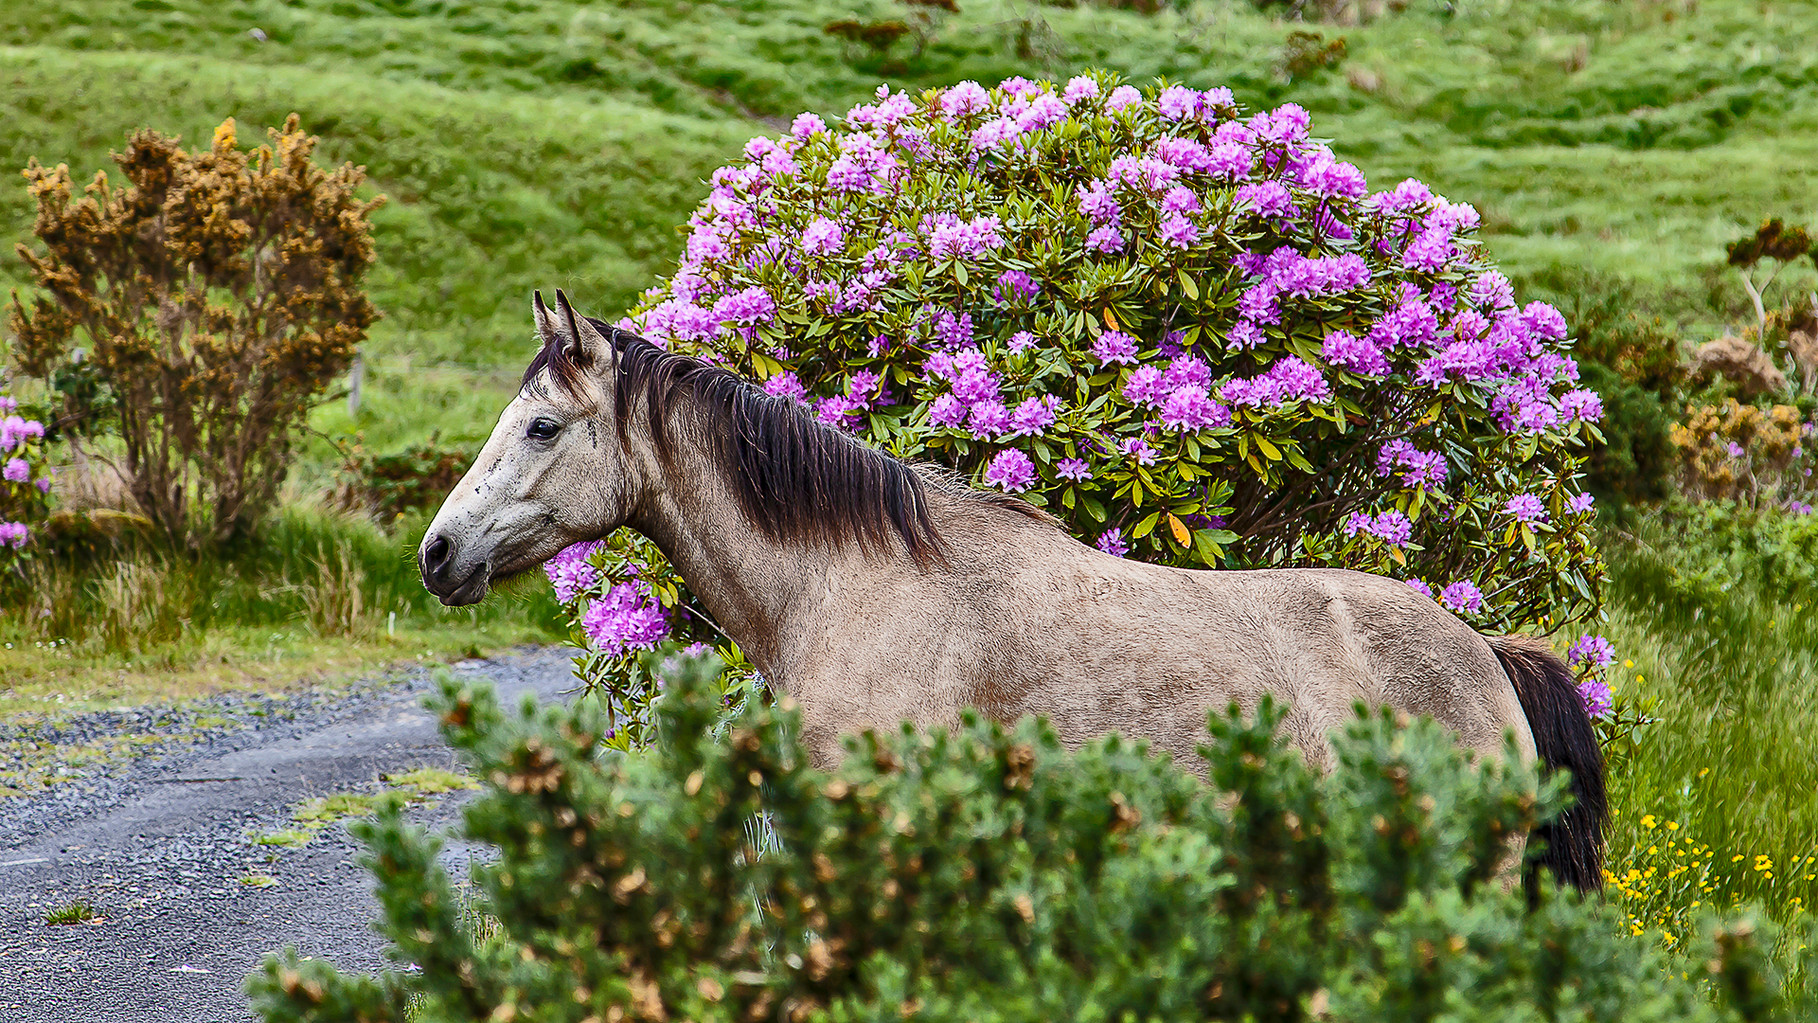 Horse at Ashleagh falls, Connemara, County Galway